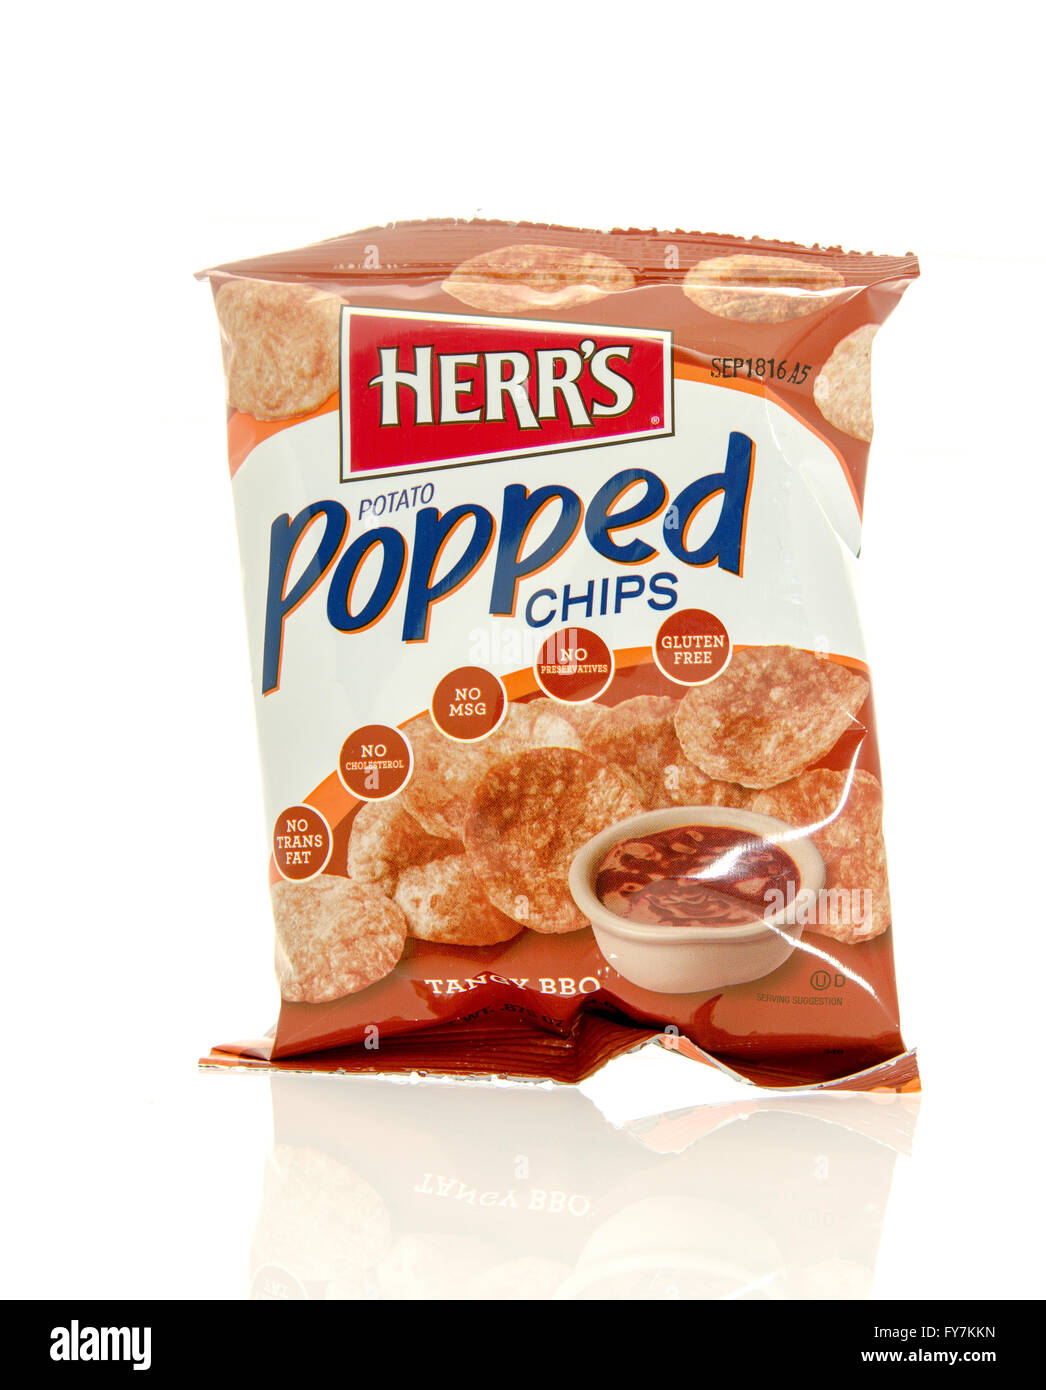 Winneconne, WI - 17 Feb 2016: Bag of Herr's potato popped chips in tangy BBQ flavor - Stock Image